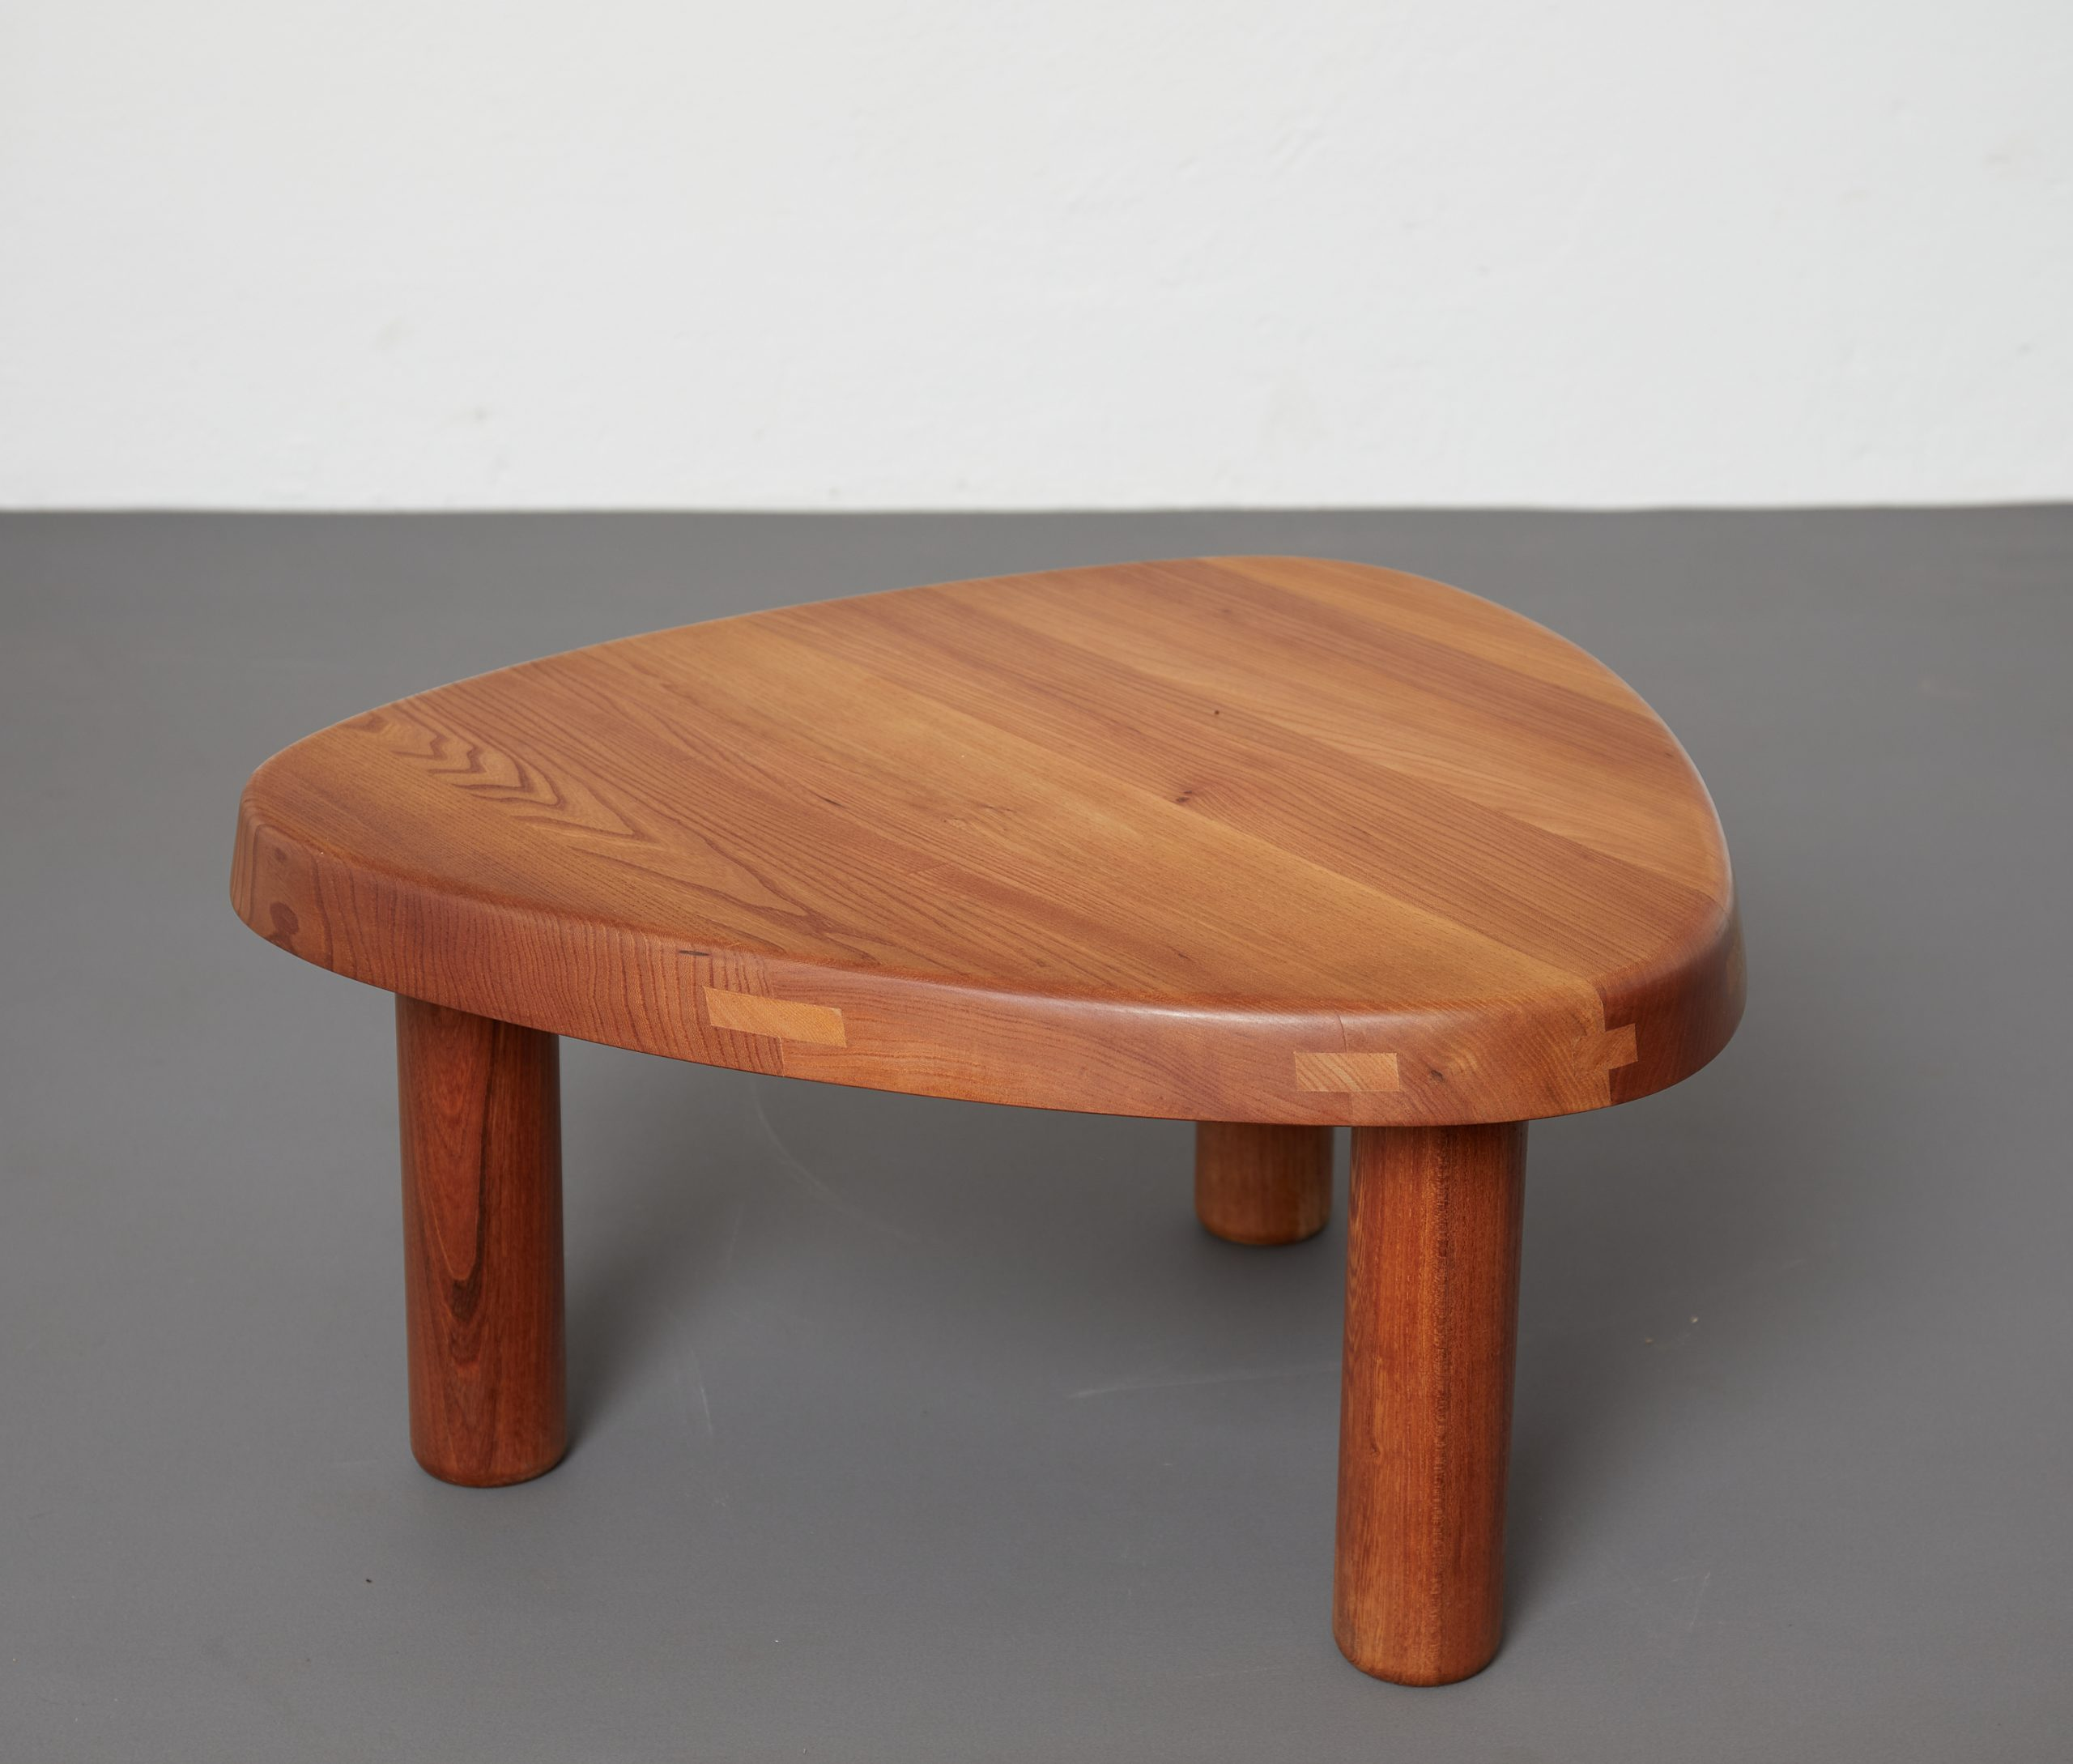 t23-table-by-pierre-chapo-image-08